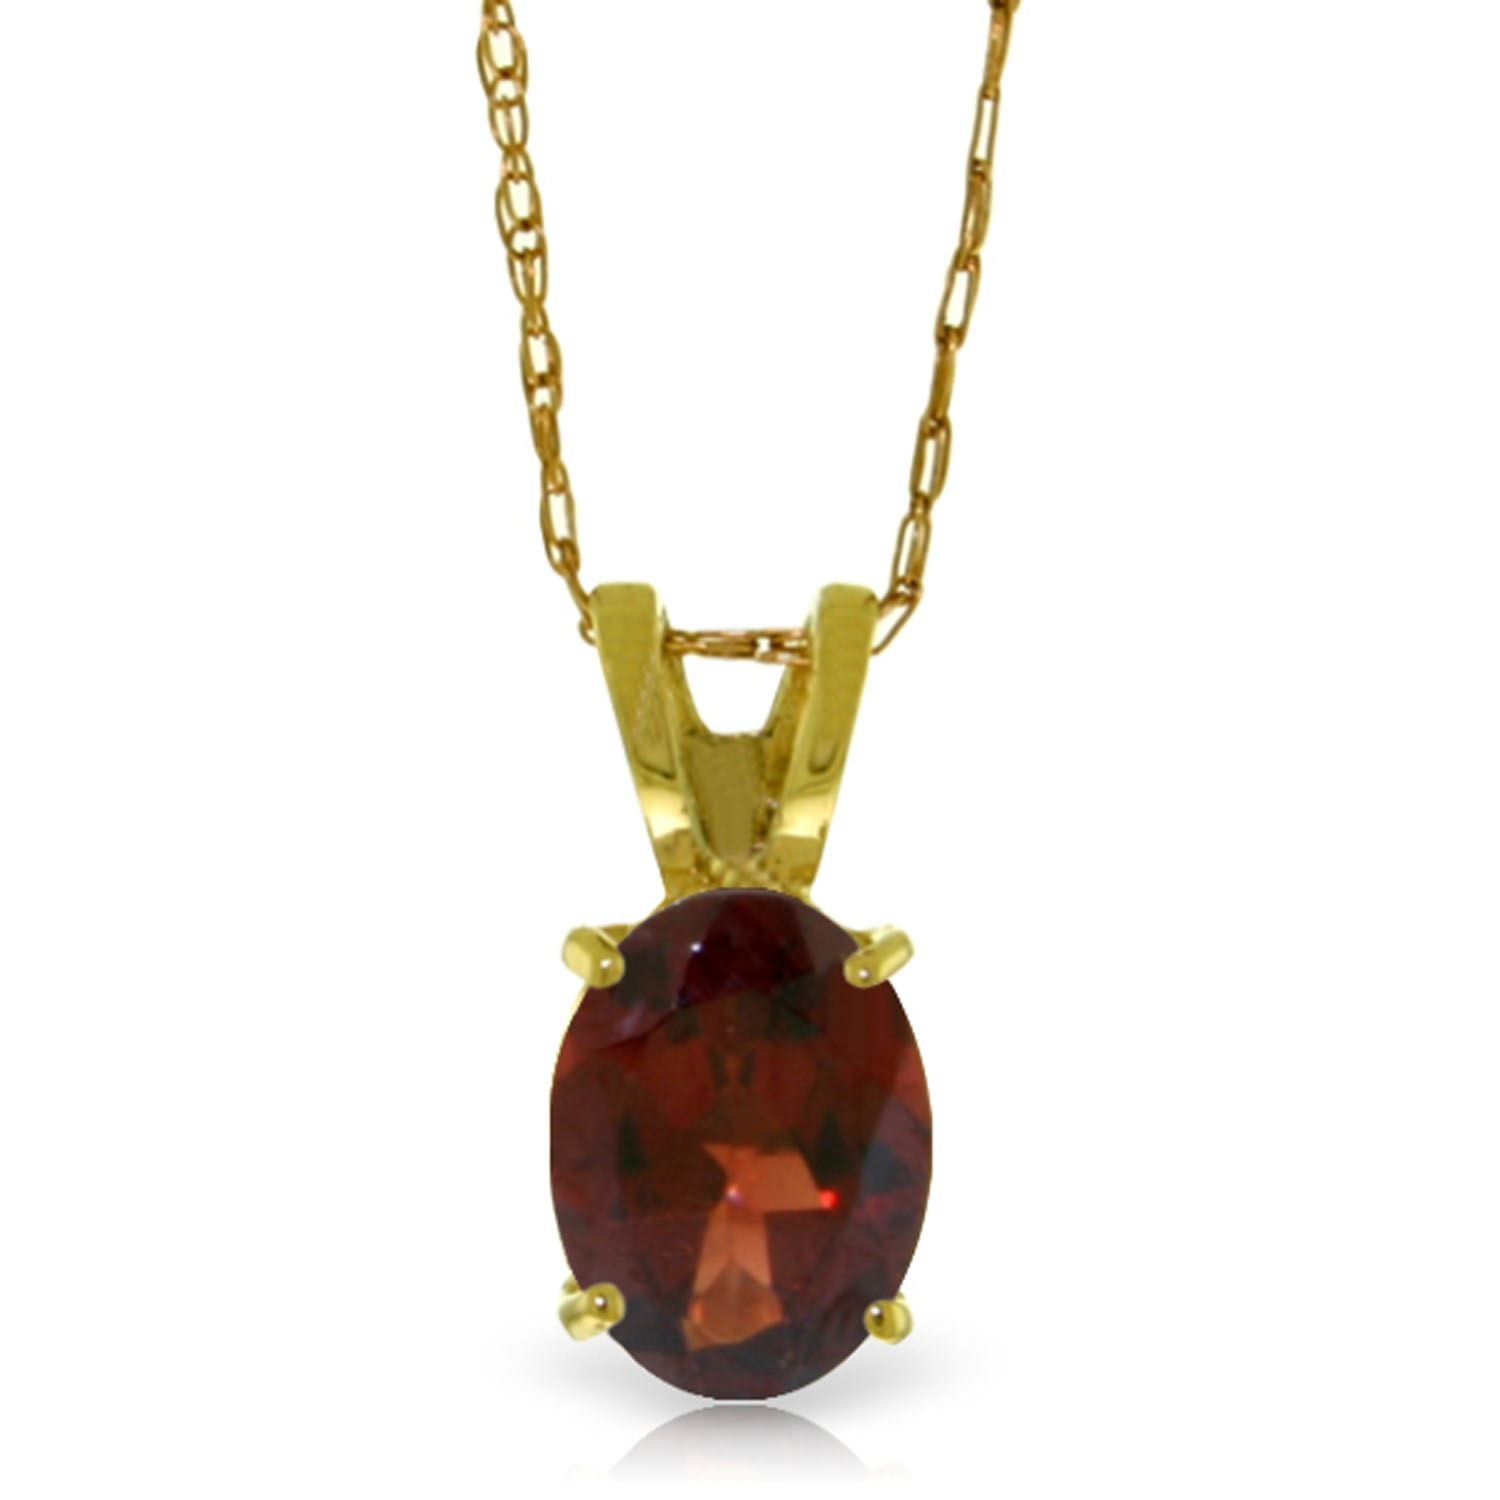 ALARRI 0.85 Carat 14K Solid Gold Visions Of Love Garnet Necklace with 22 Inch Chain Length